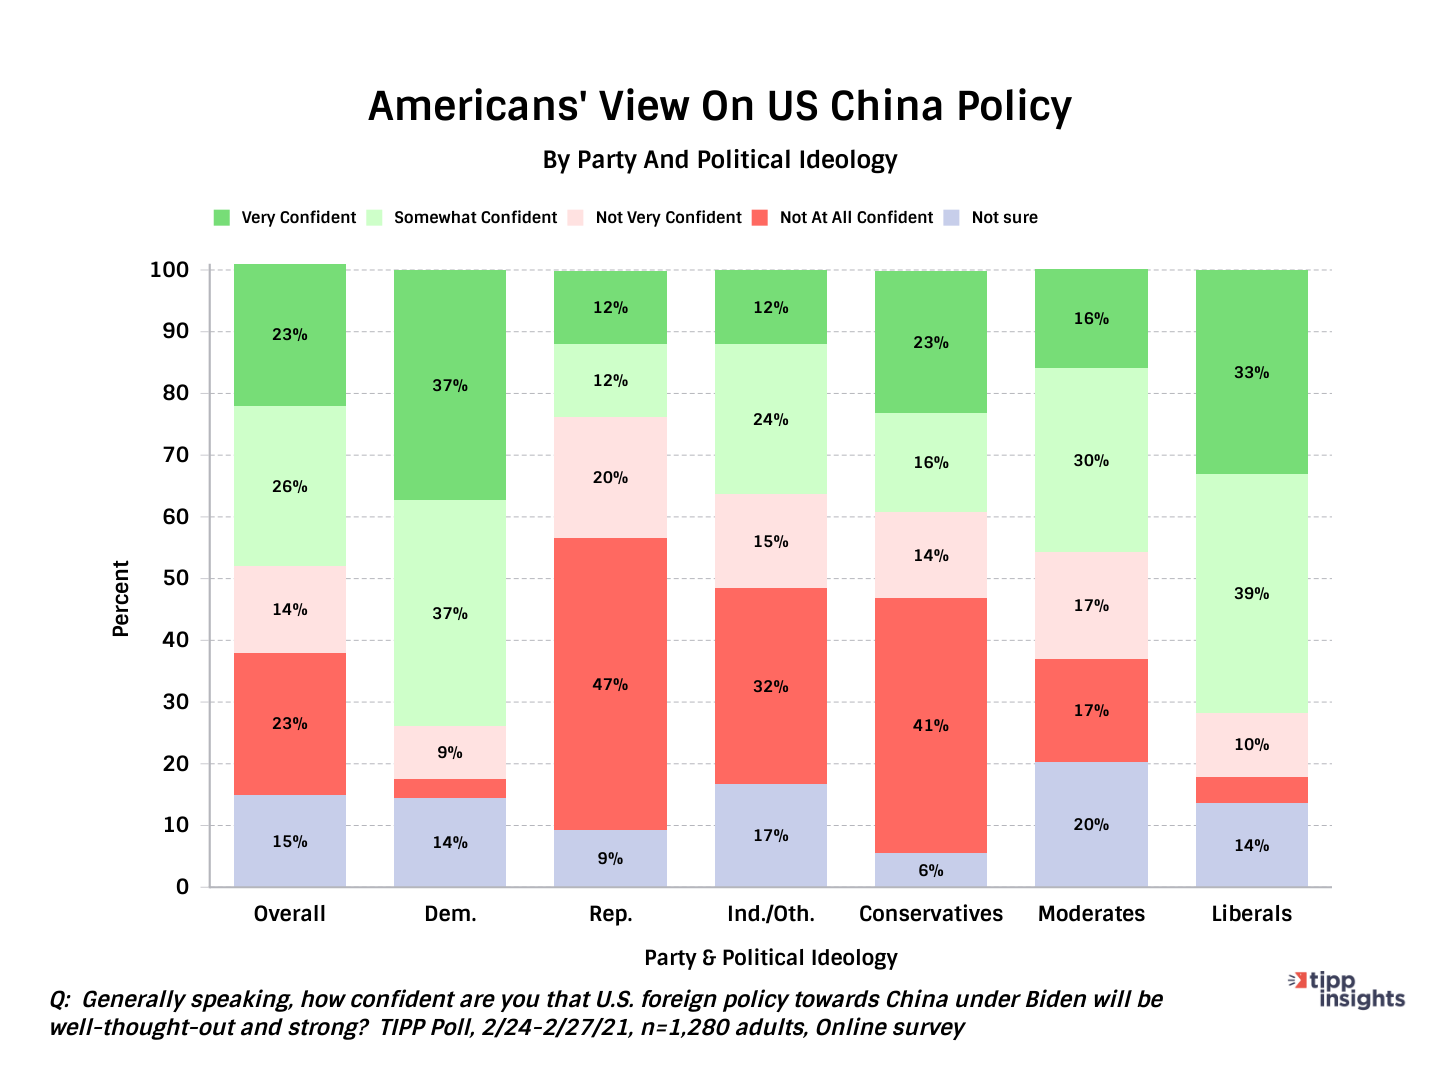 TIPP Poll Results, Americas view on US China Policy along party and political ideology